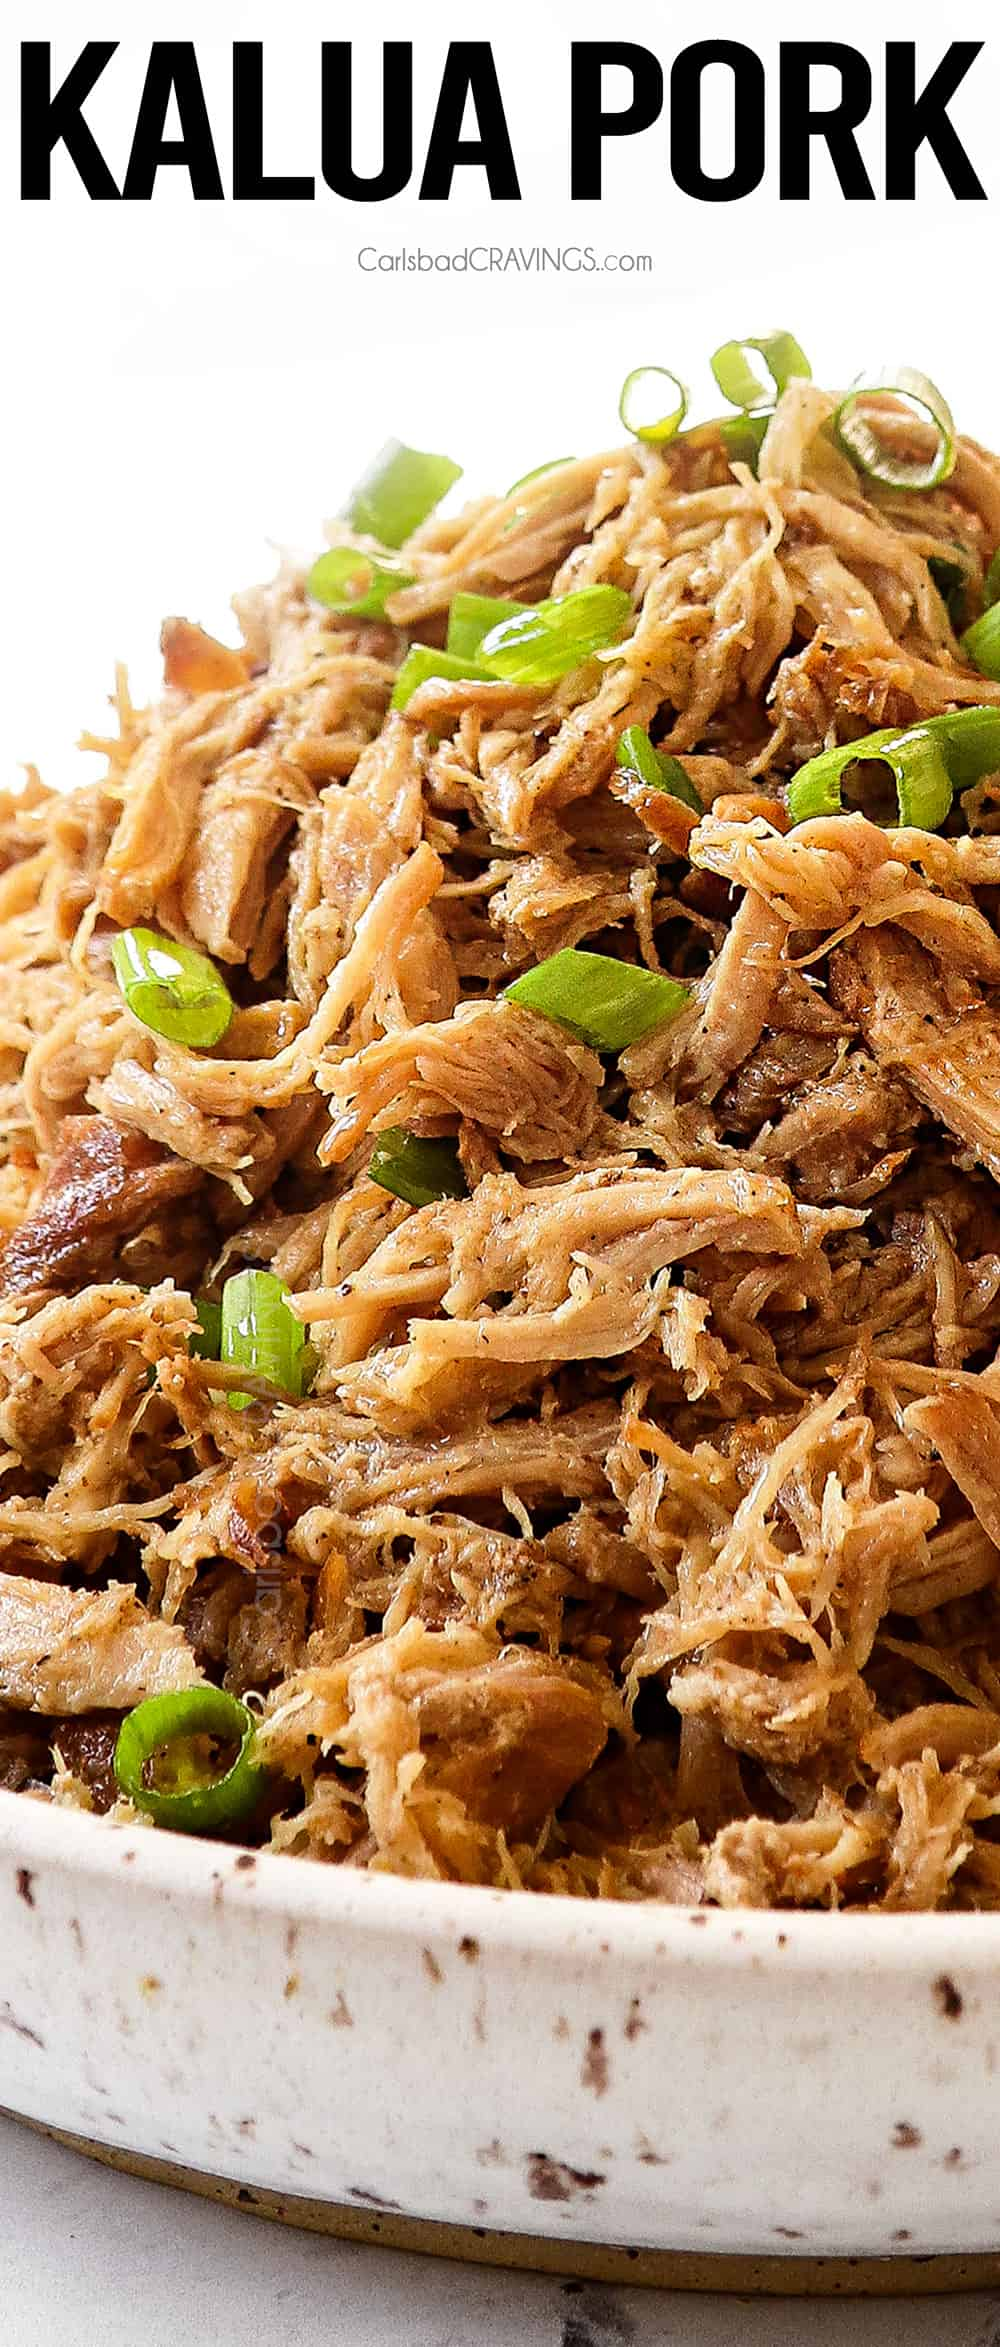 up close of a bowl of kalua pork garnished by green onions showing how tender and juicy it is